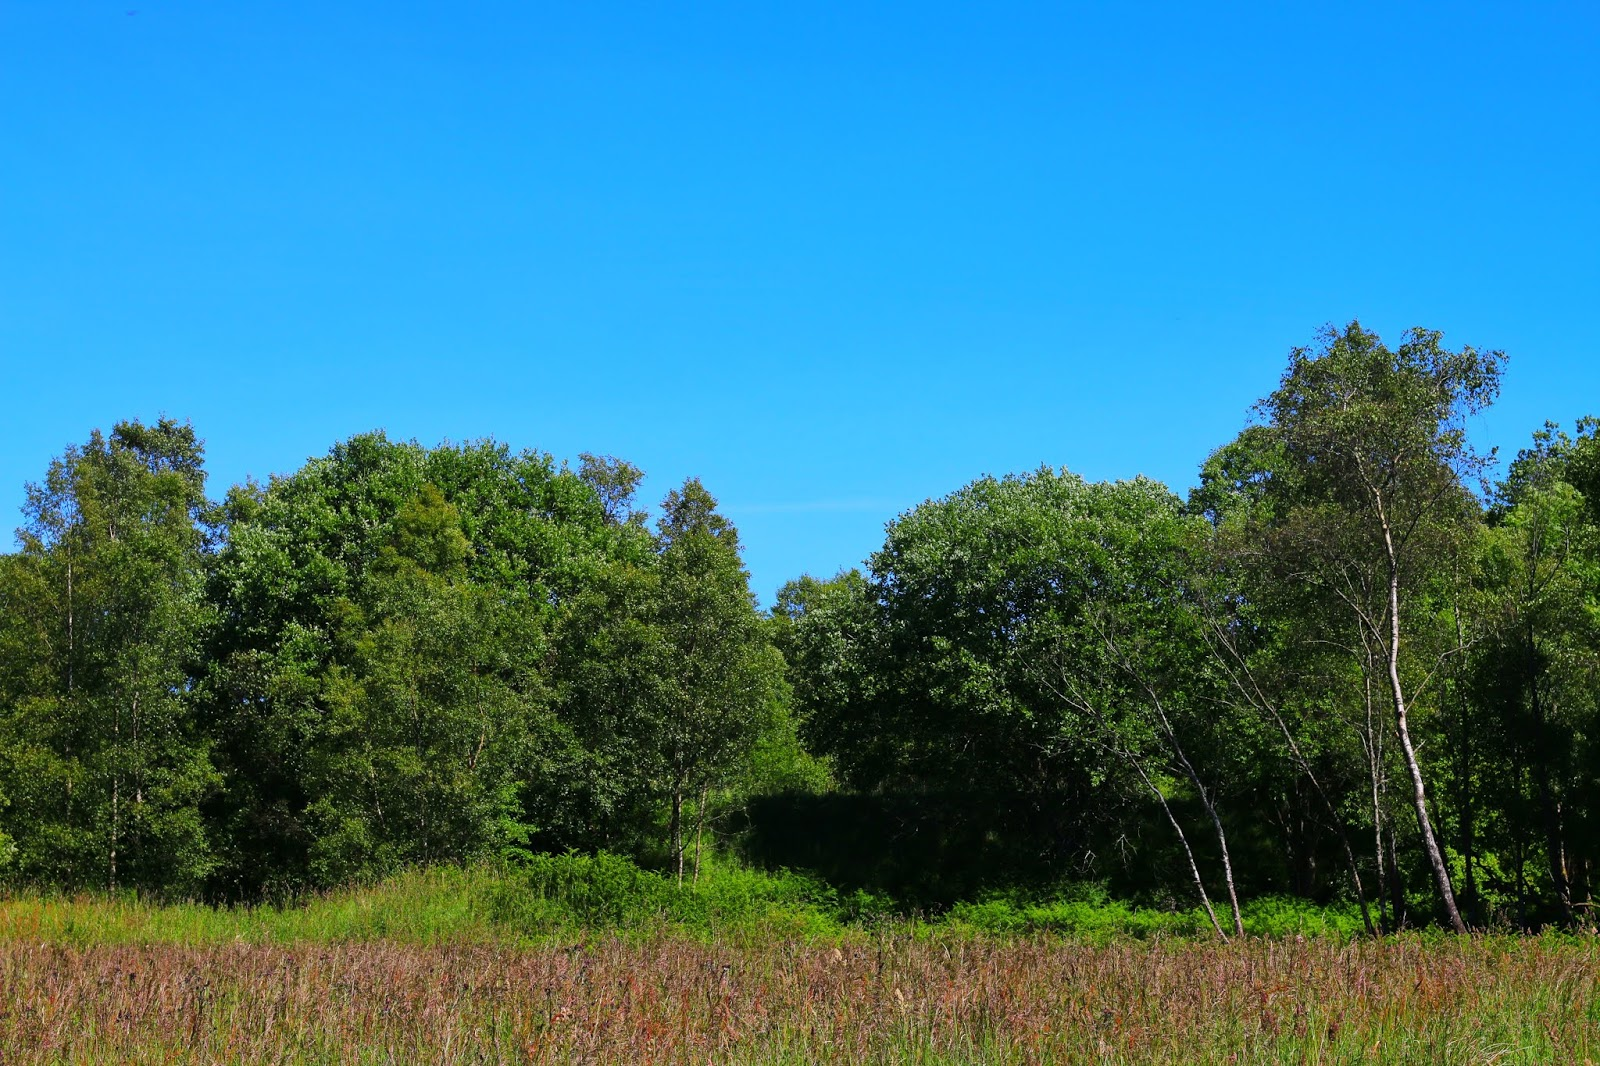 Photo of green trees against a blue sky